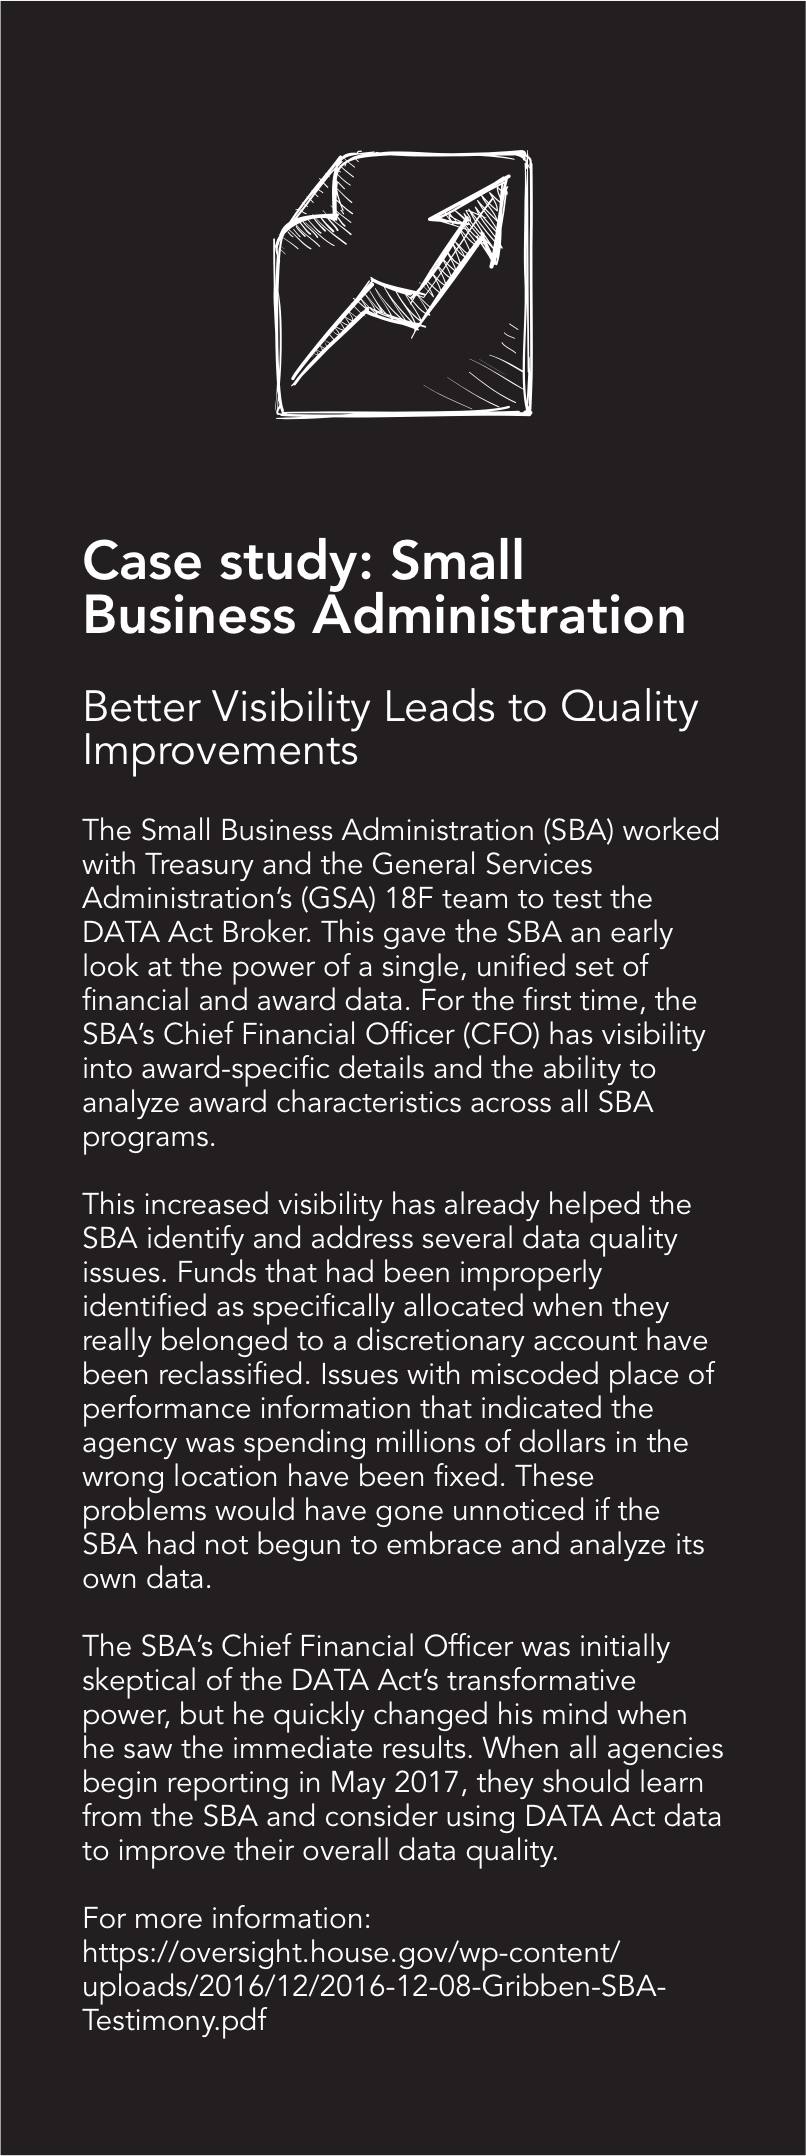 Case study: Small Business Administration